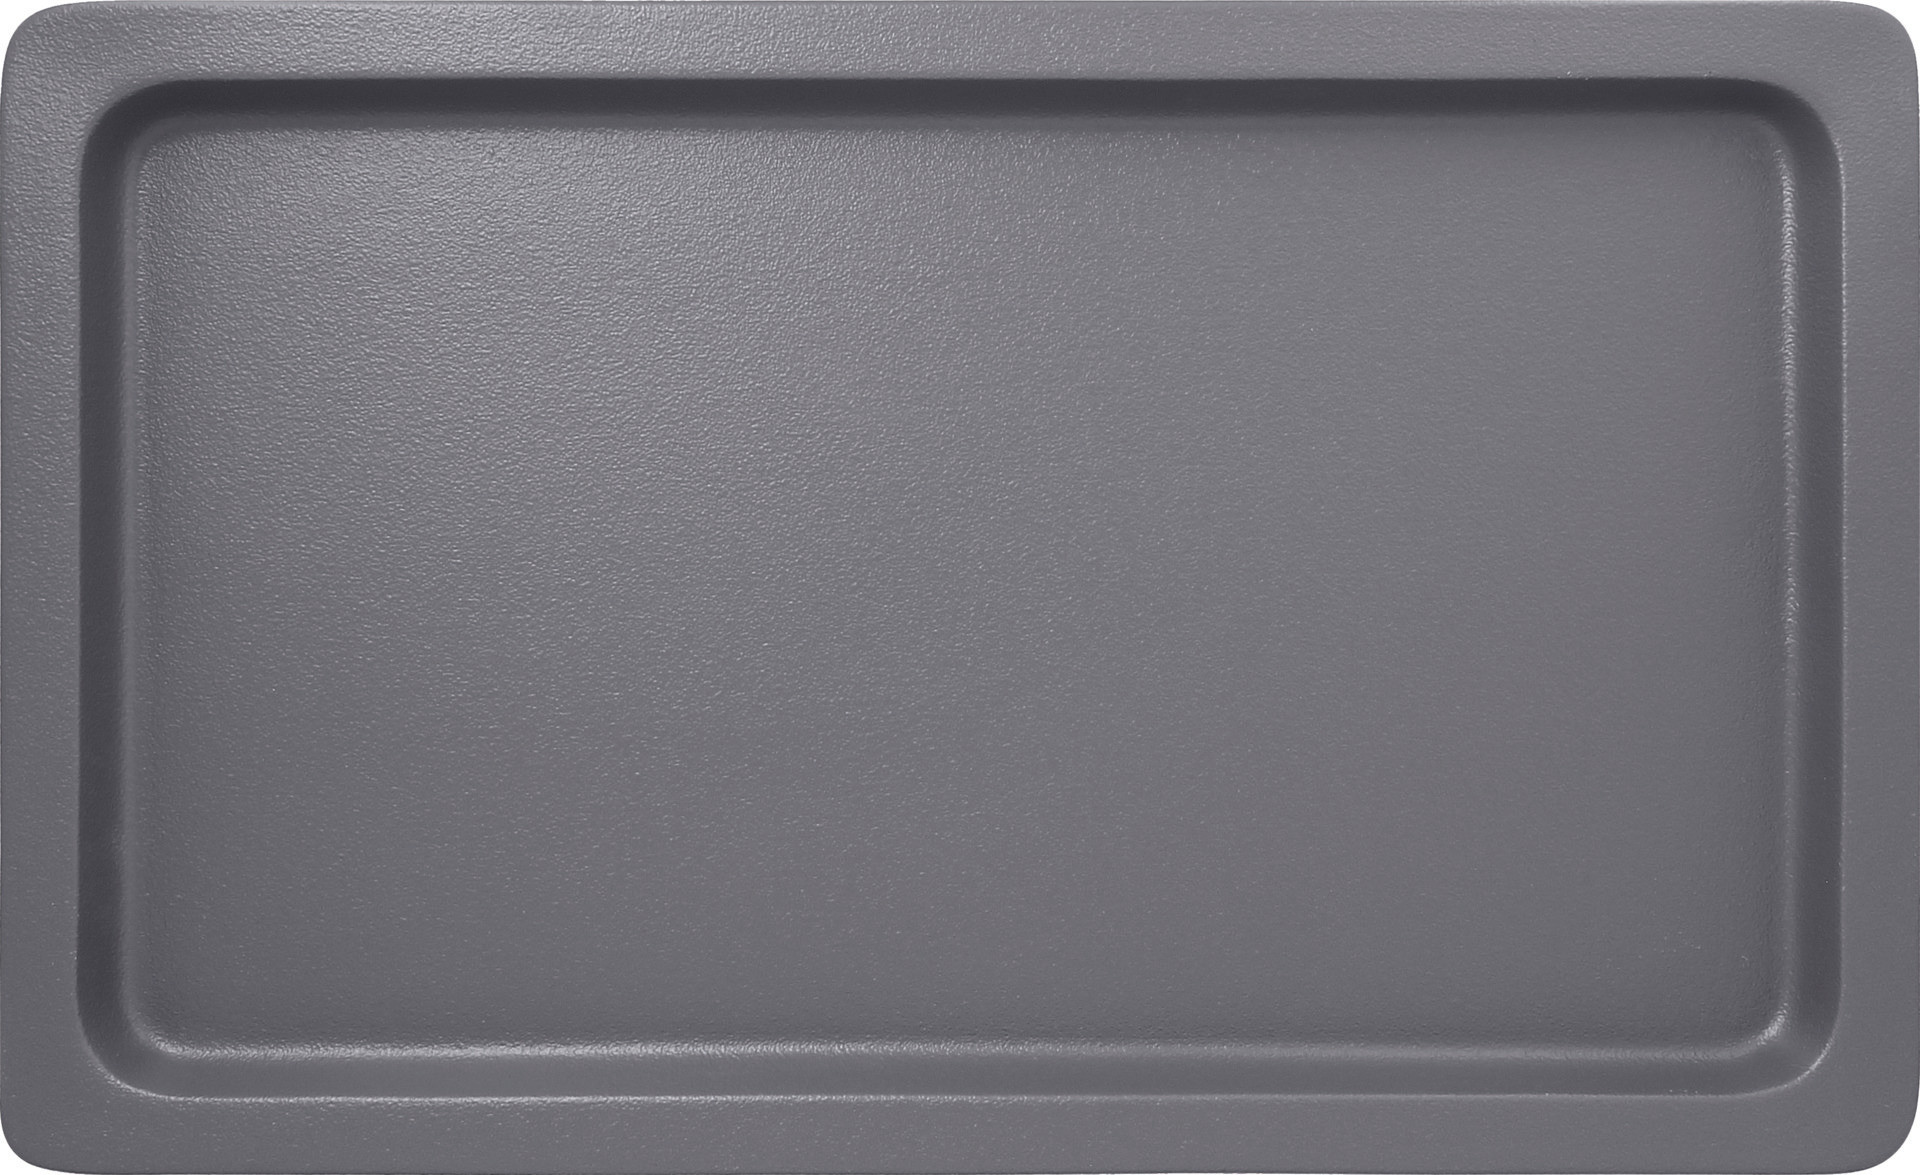 Neofusion, GN-Schale GN 1/1 flach 530 x 325 mm / 2,20 l stone